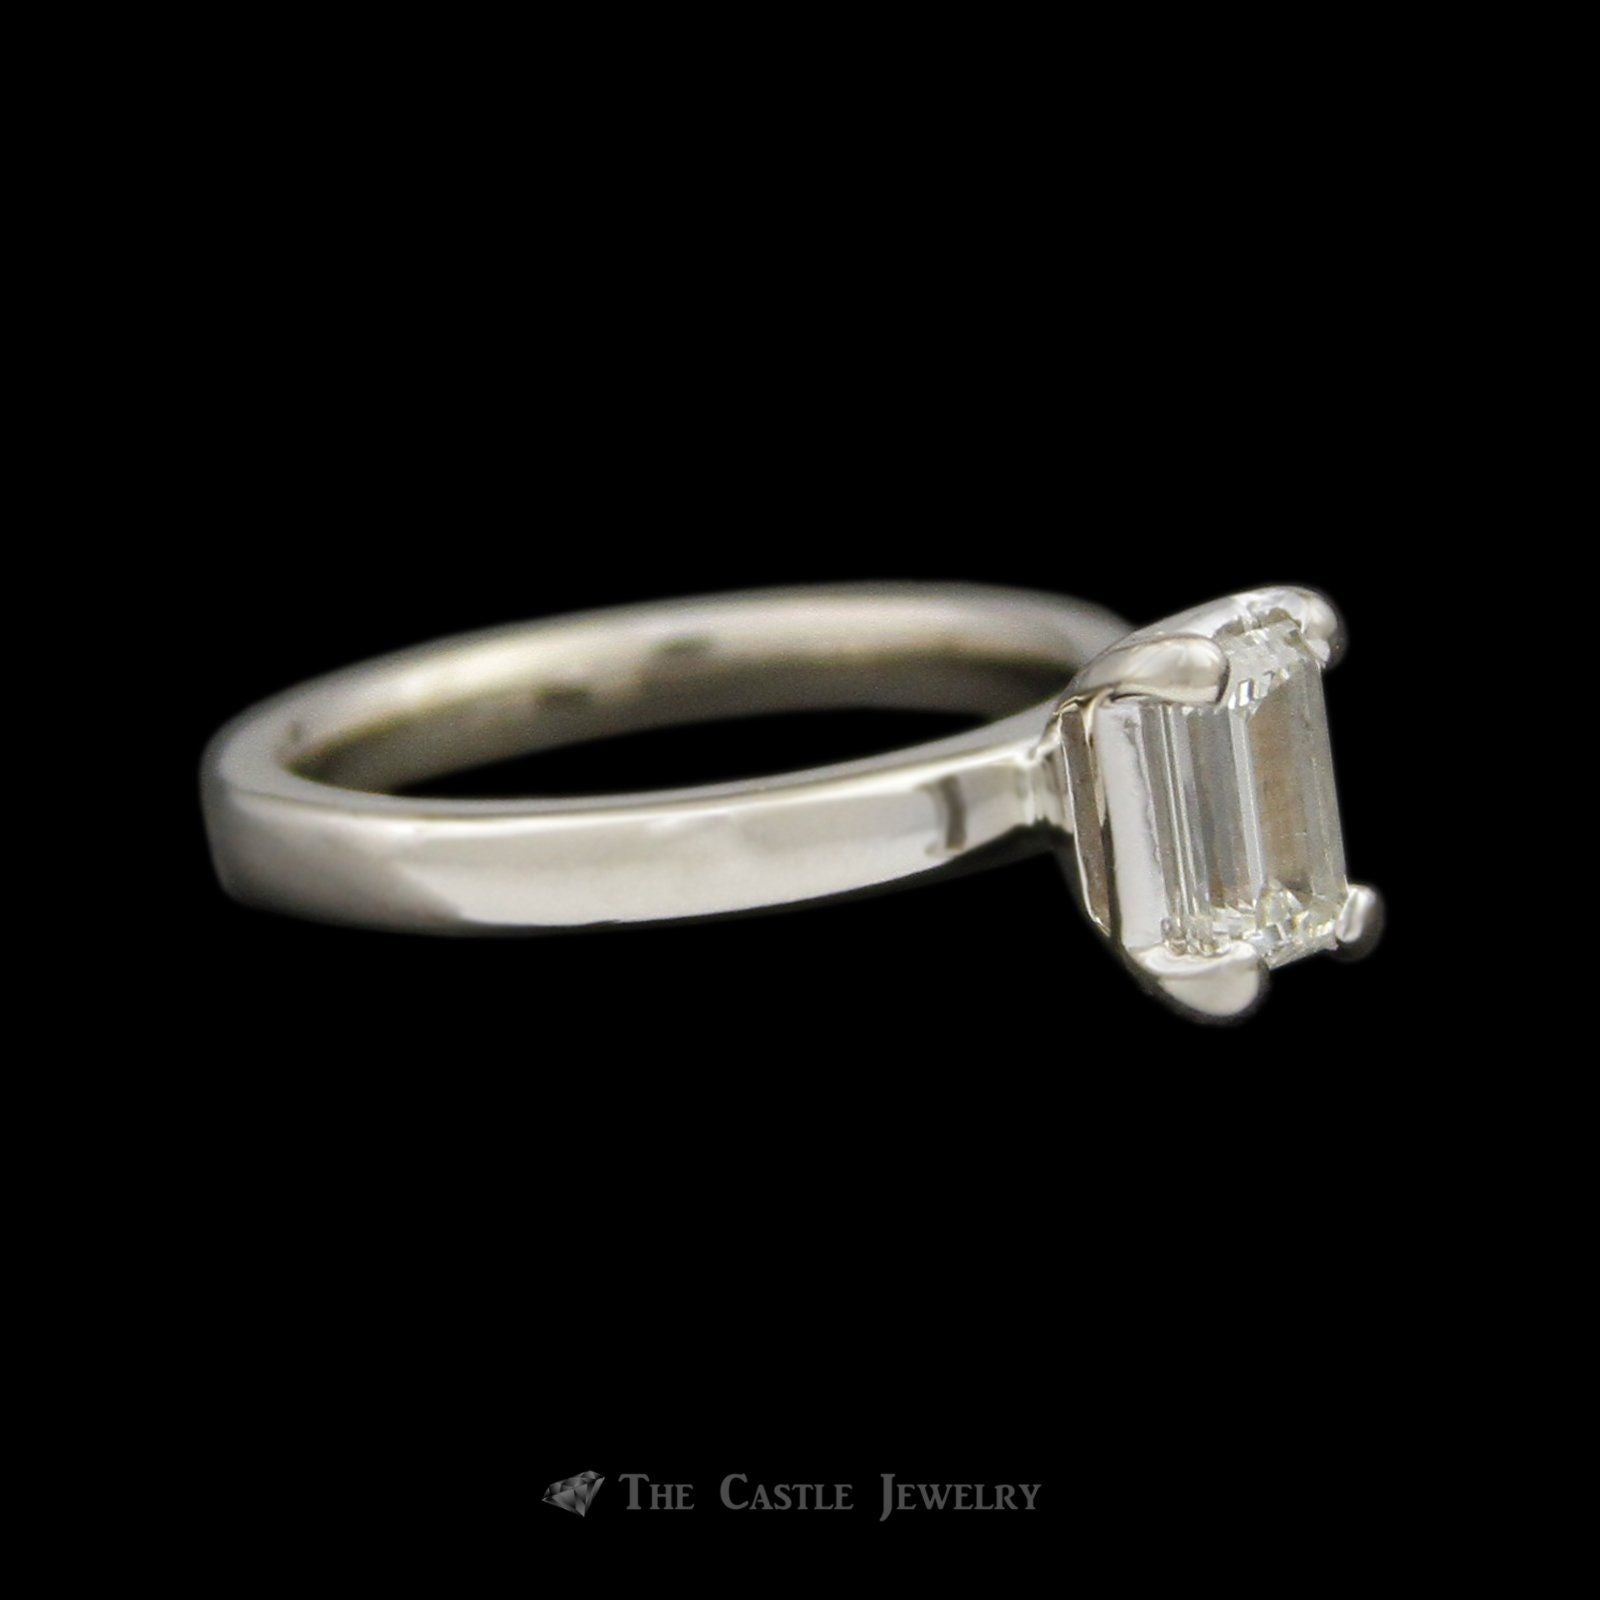 EGL Certified VS2/H Emerald Cut .74ct Diamond Solitaire Engagement Ring in 14K White Gold-2